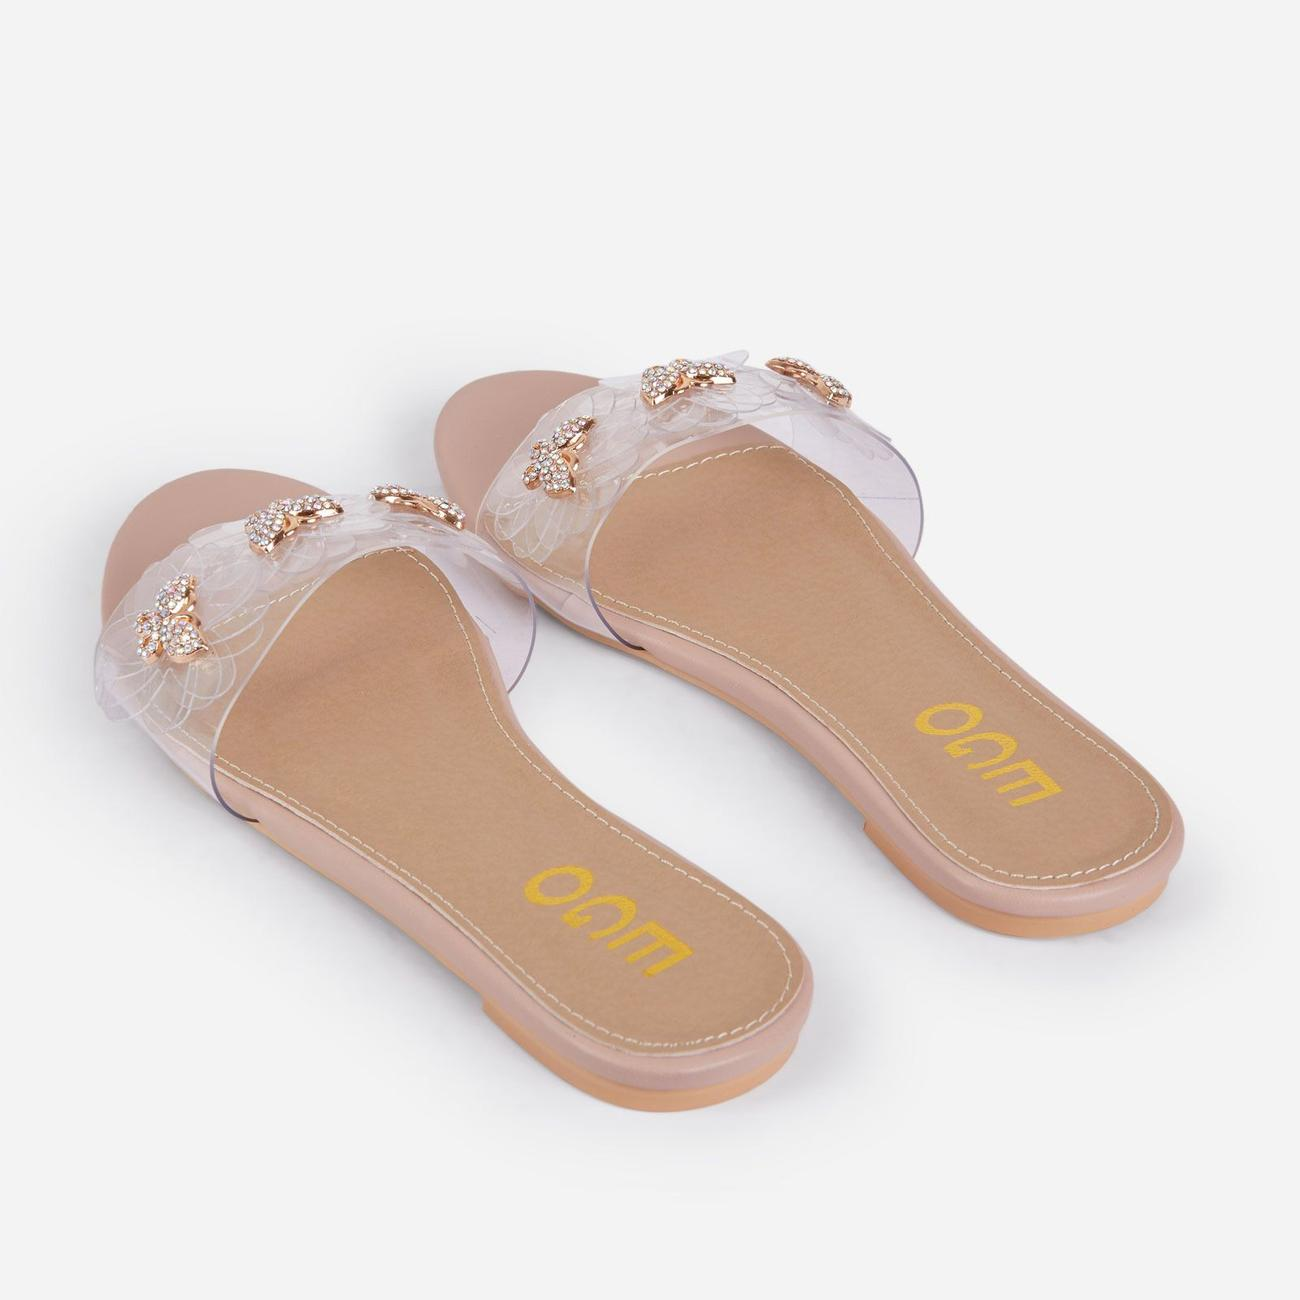 Lily Diamante Butterfly Detail Floral Clear Perspex Flat Slider Sandal In Nude Faux Leather Image 3